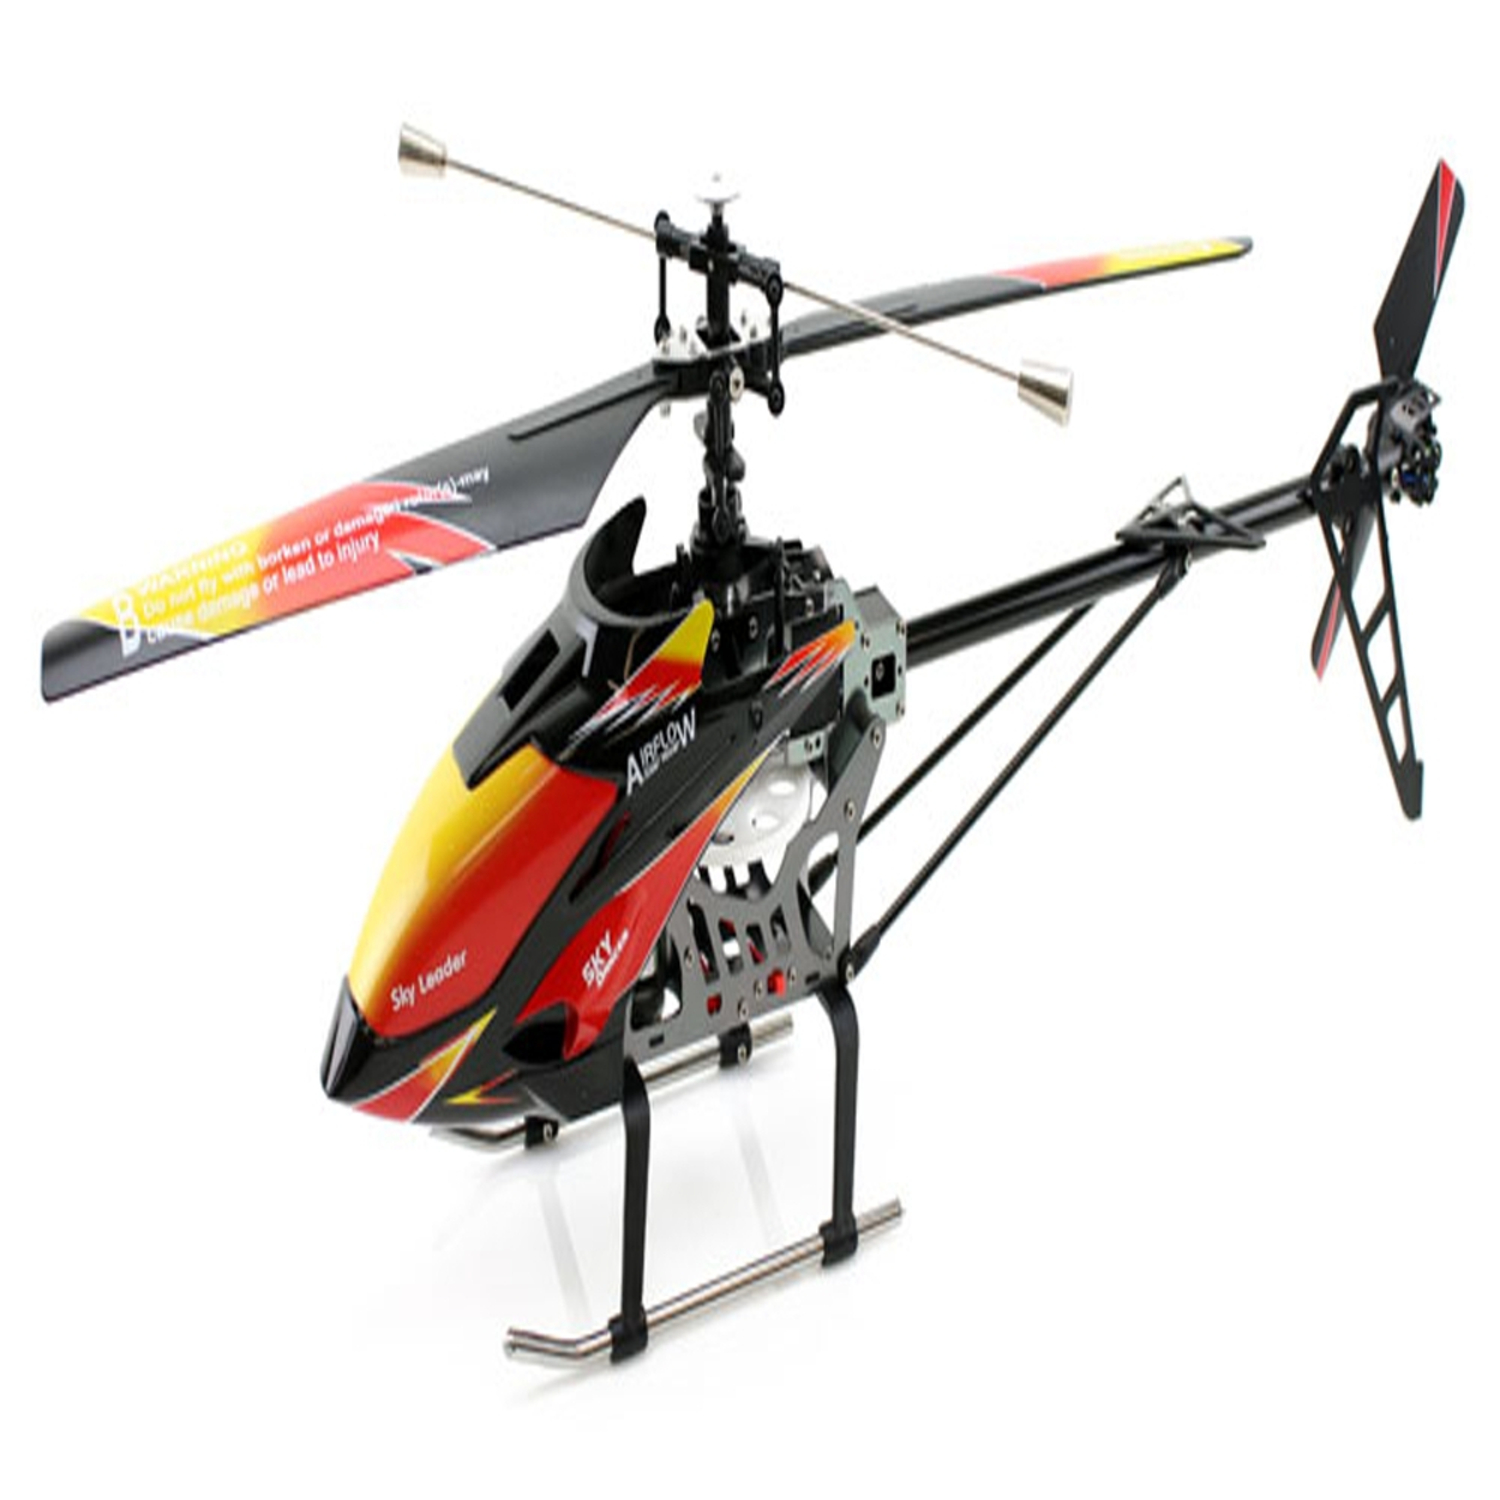 "WL V913 27"" Large 4 Channel 4CH RC Helicopter 2.4GHz"